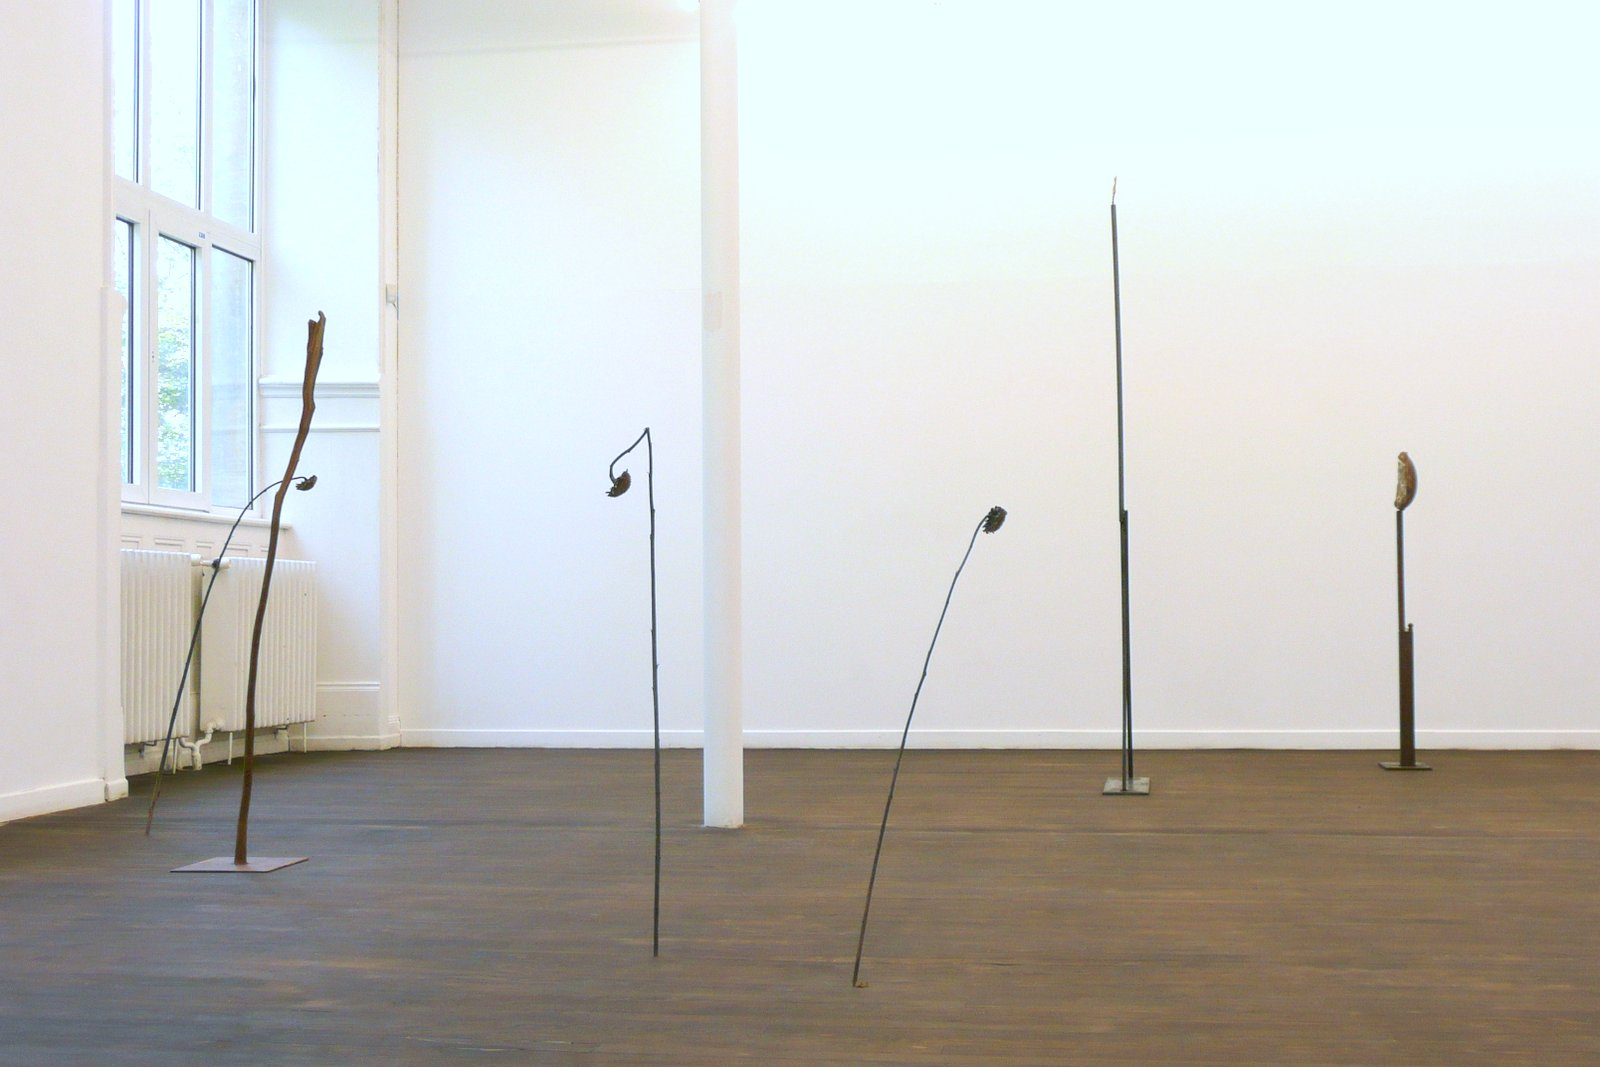 Luca Francesconi, Echo of the Moon solo show, installation view, Crac-Alsace, 2012 5